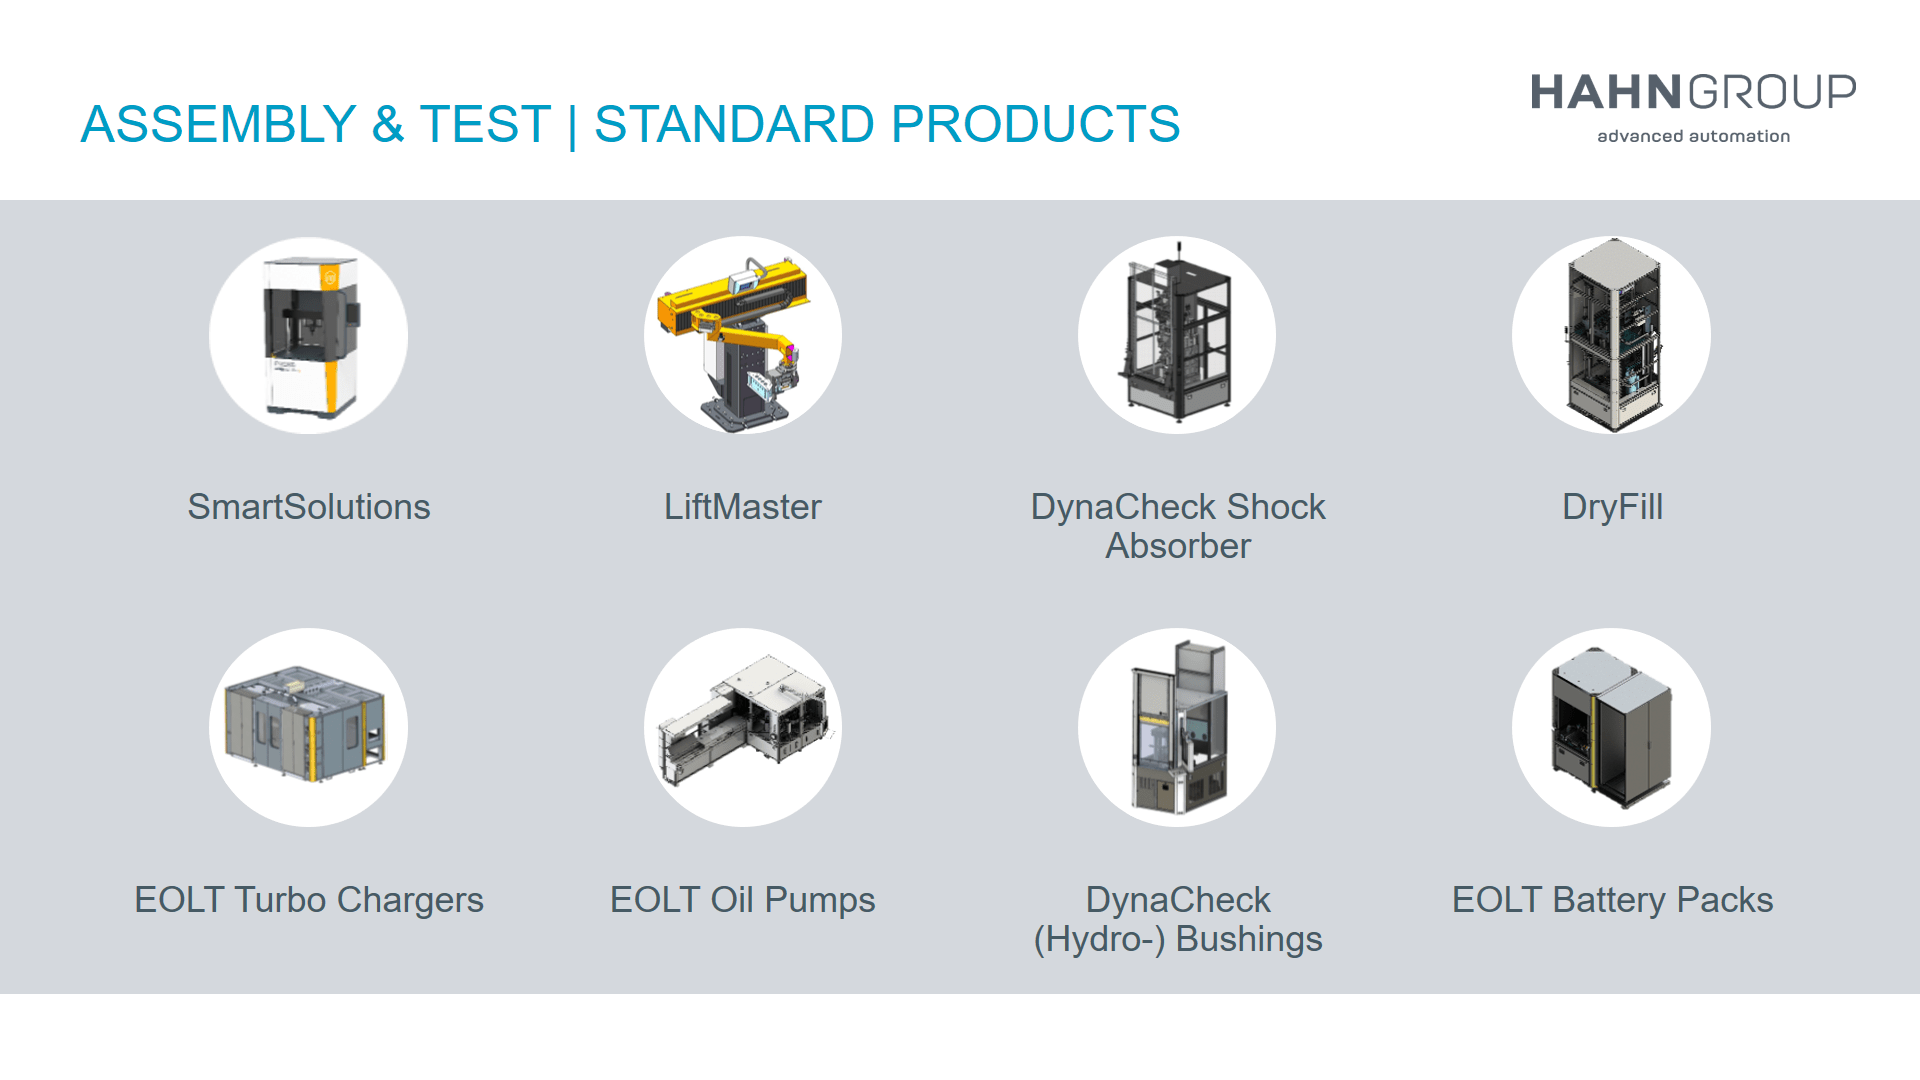 Standard Products of HAHN Group Assembly and Test